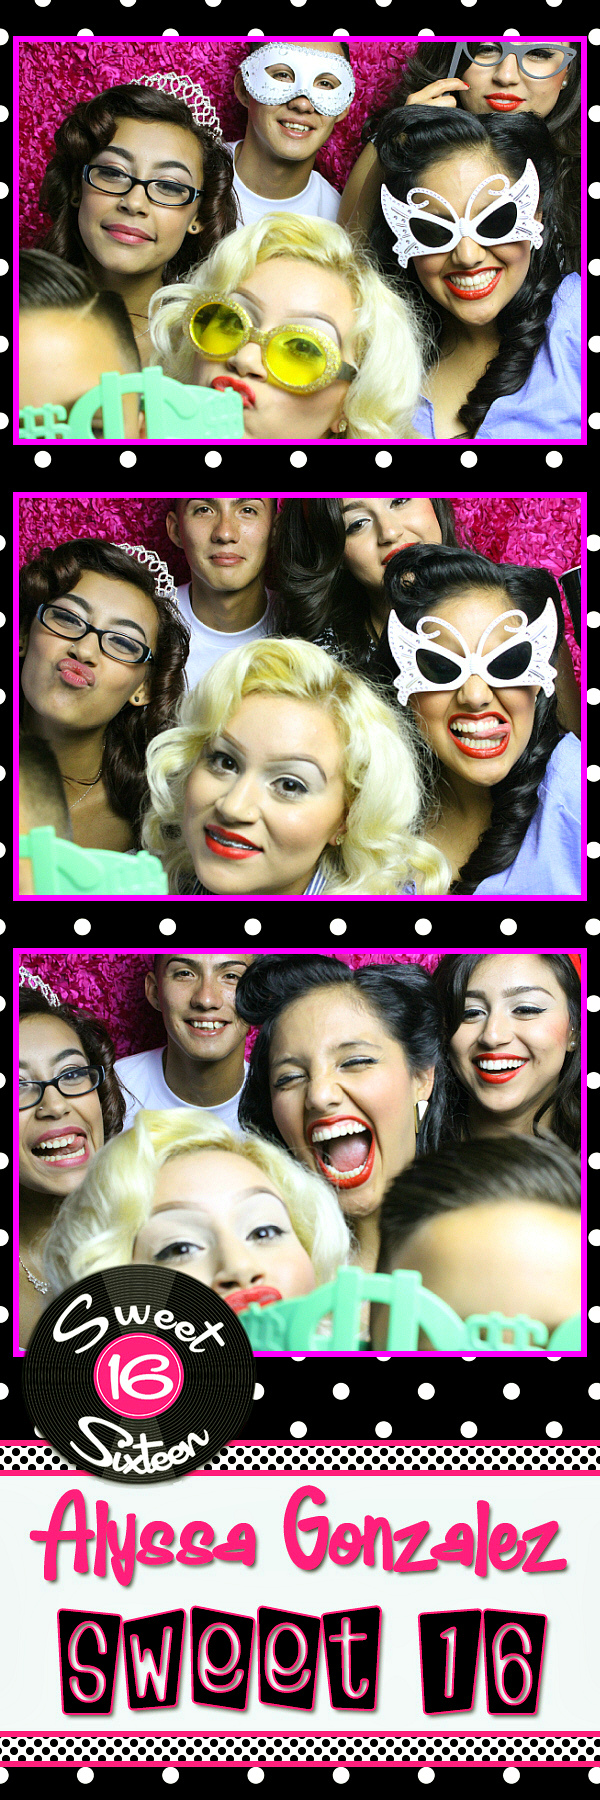 Sweet 16 Photo Strip